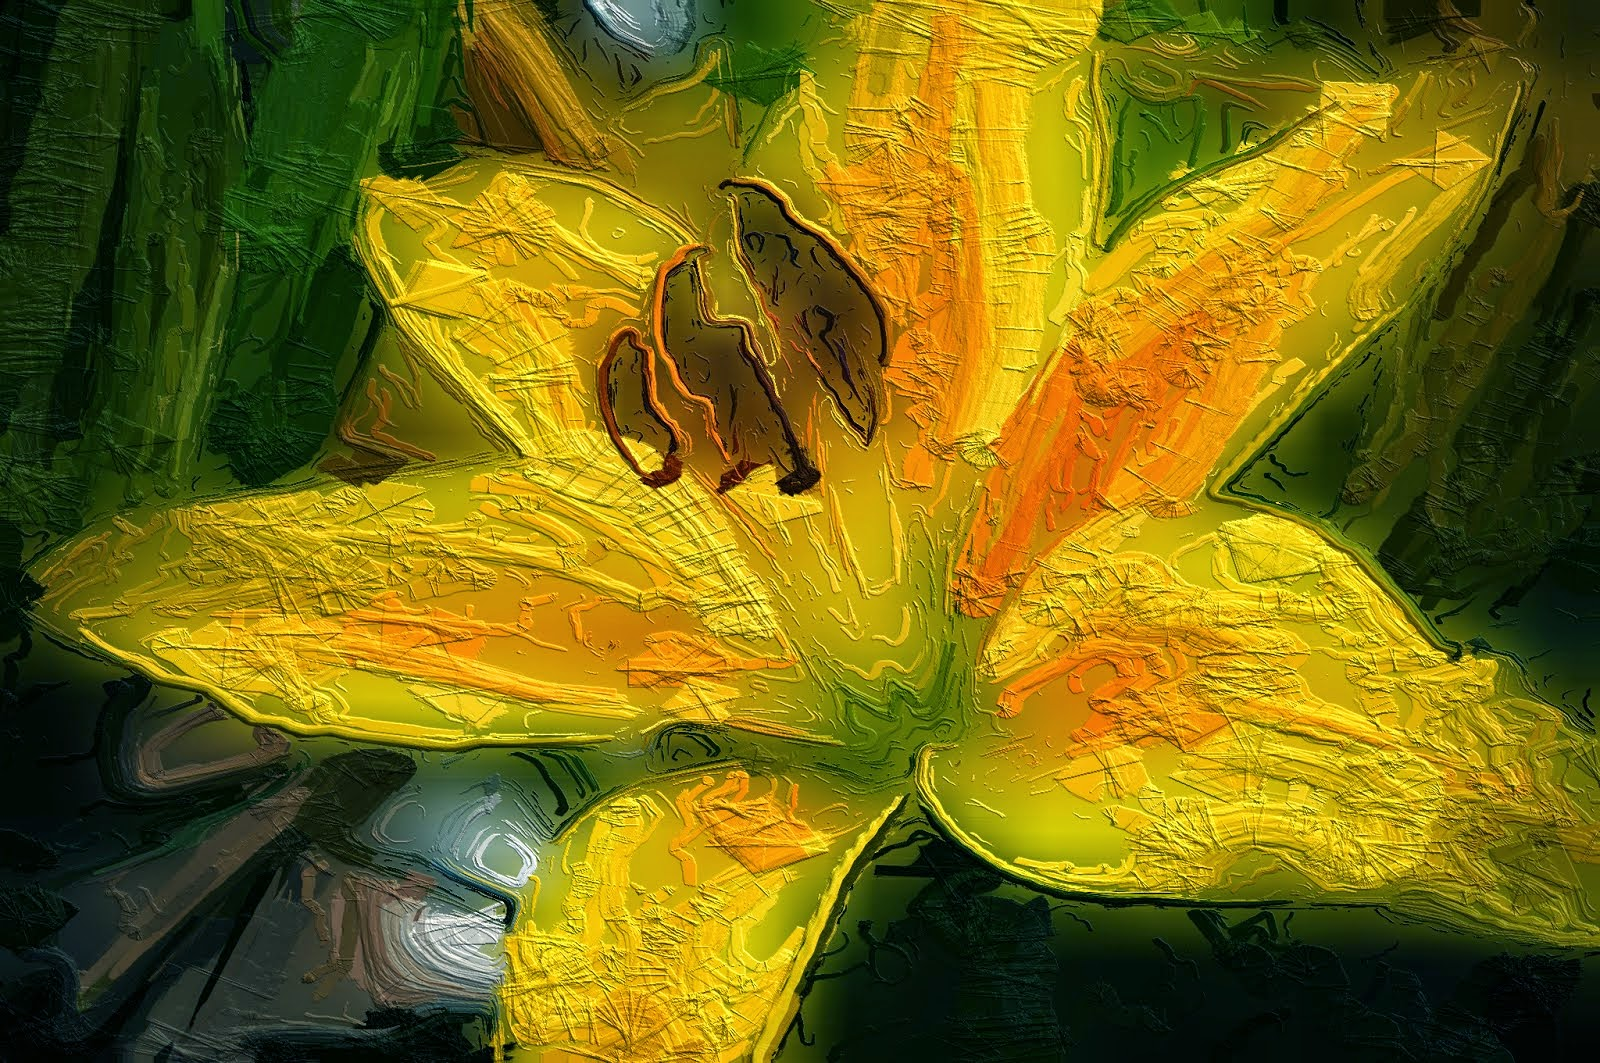 15 beautiful yellow flower free paintings 1 million free pictures abstract yellow flower painting mightylinksfo